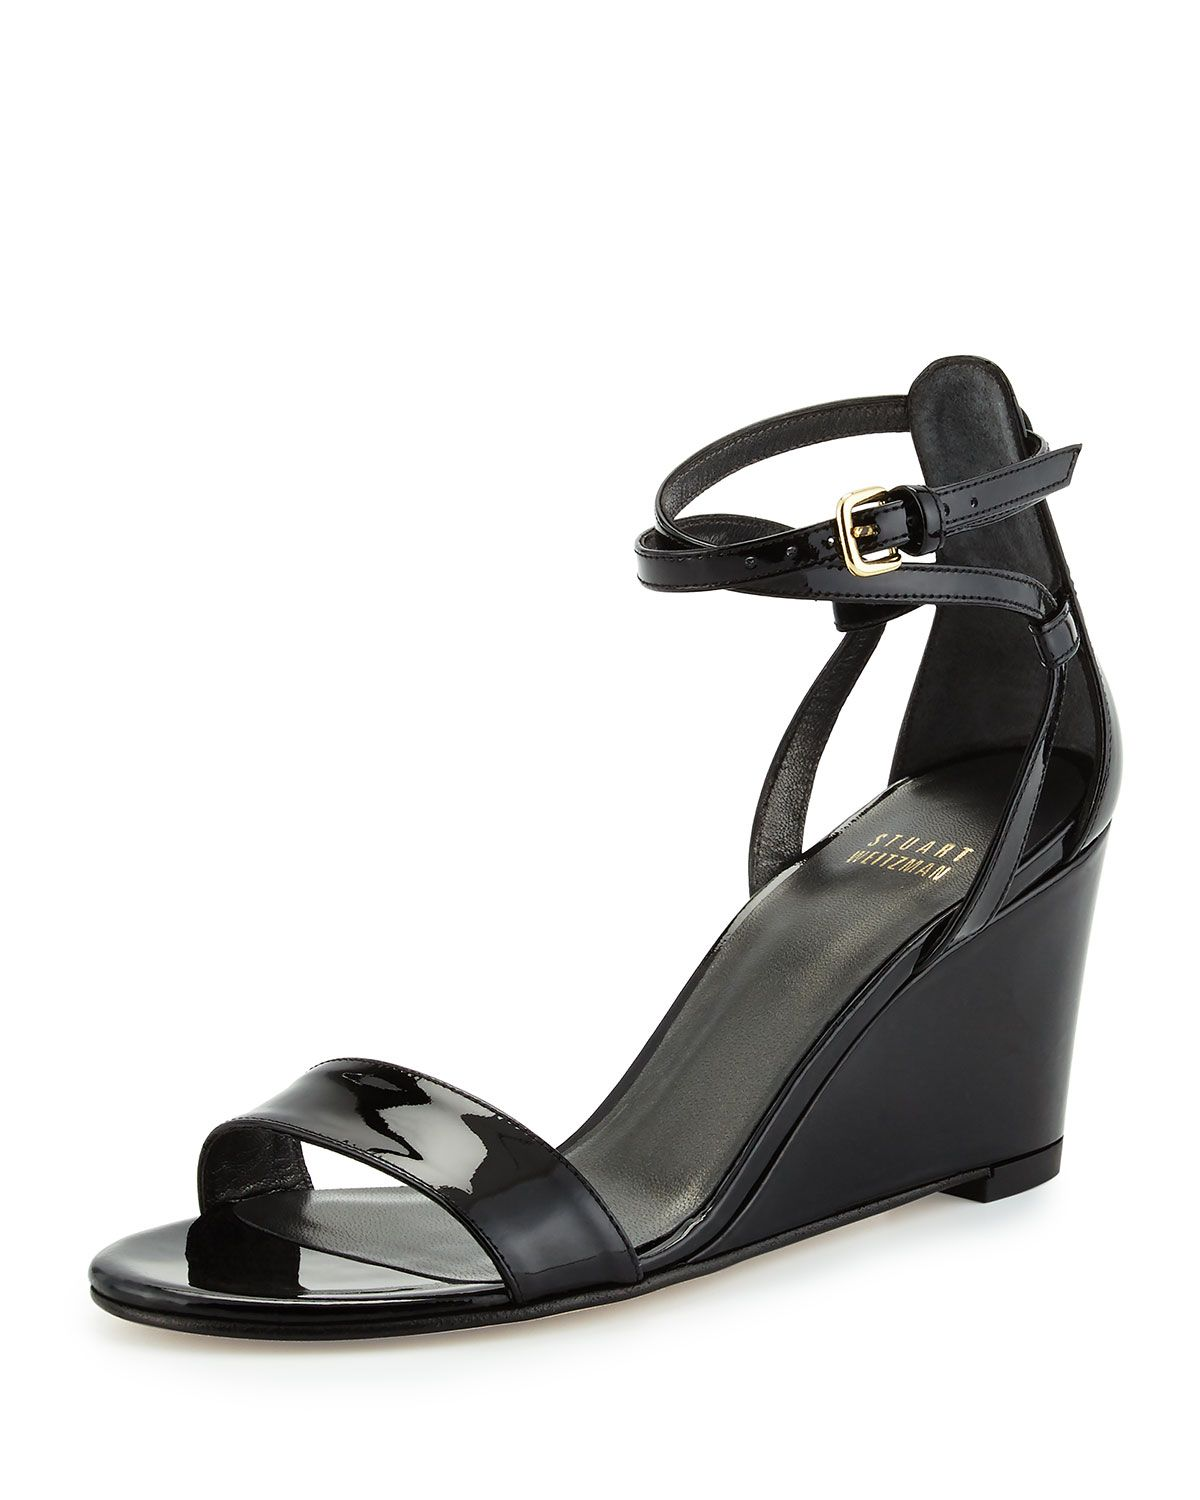 3ab30a681d2 Backdraft Patent Wedge Sandal